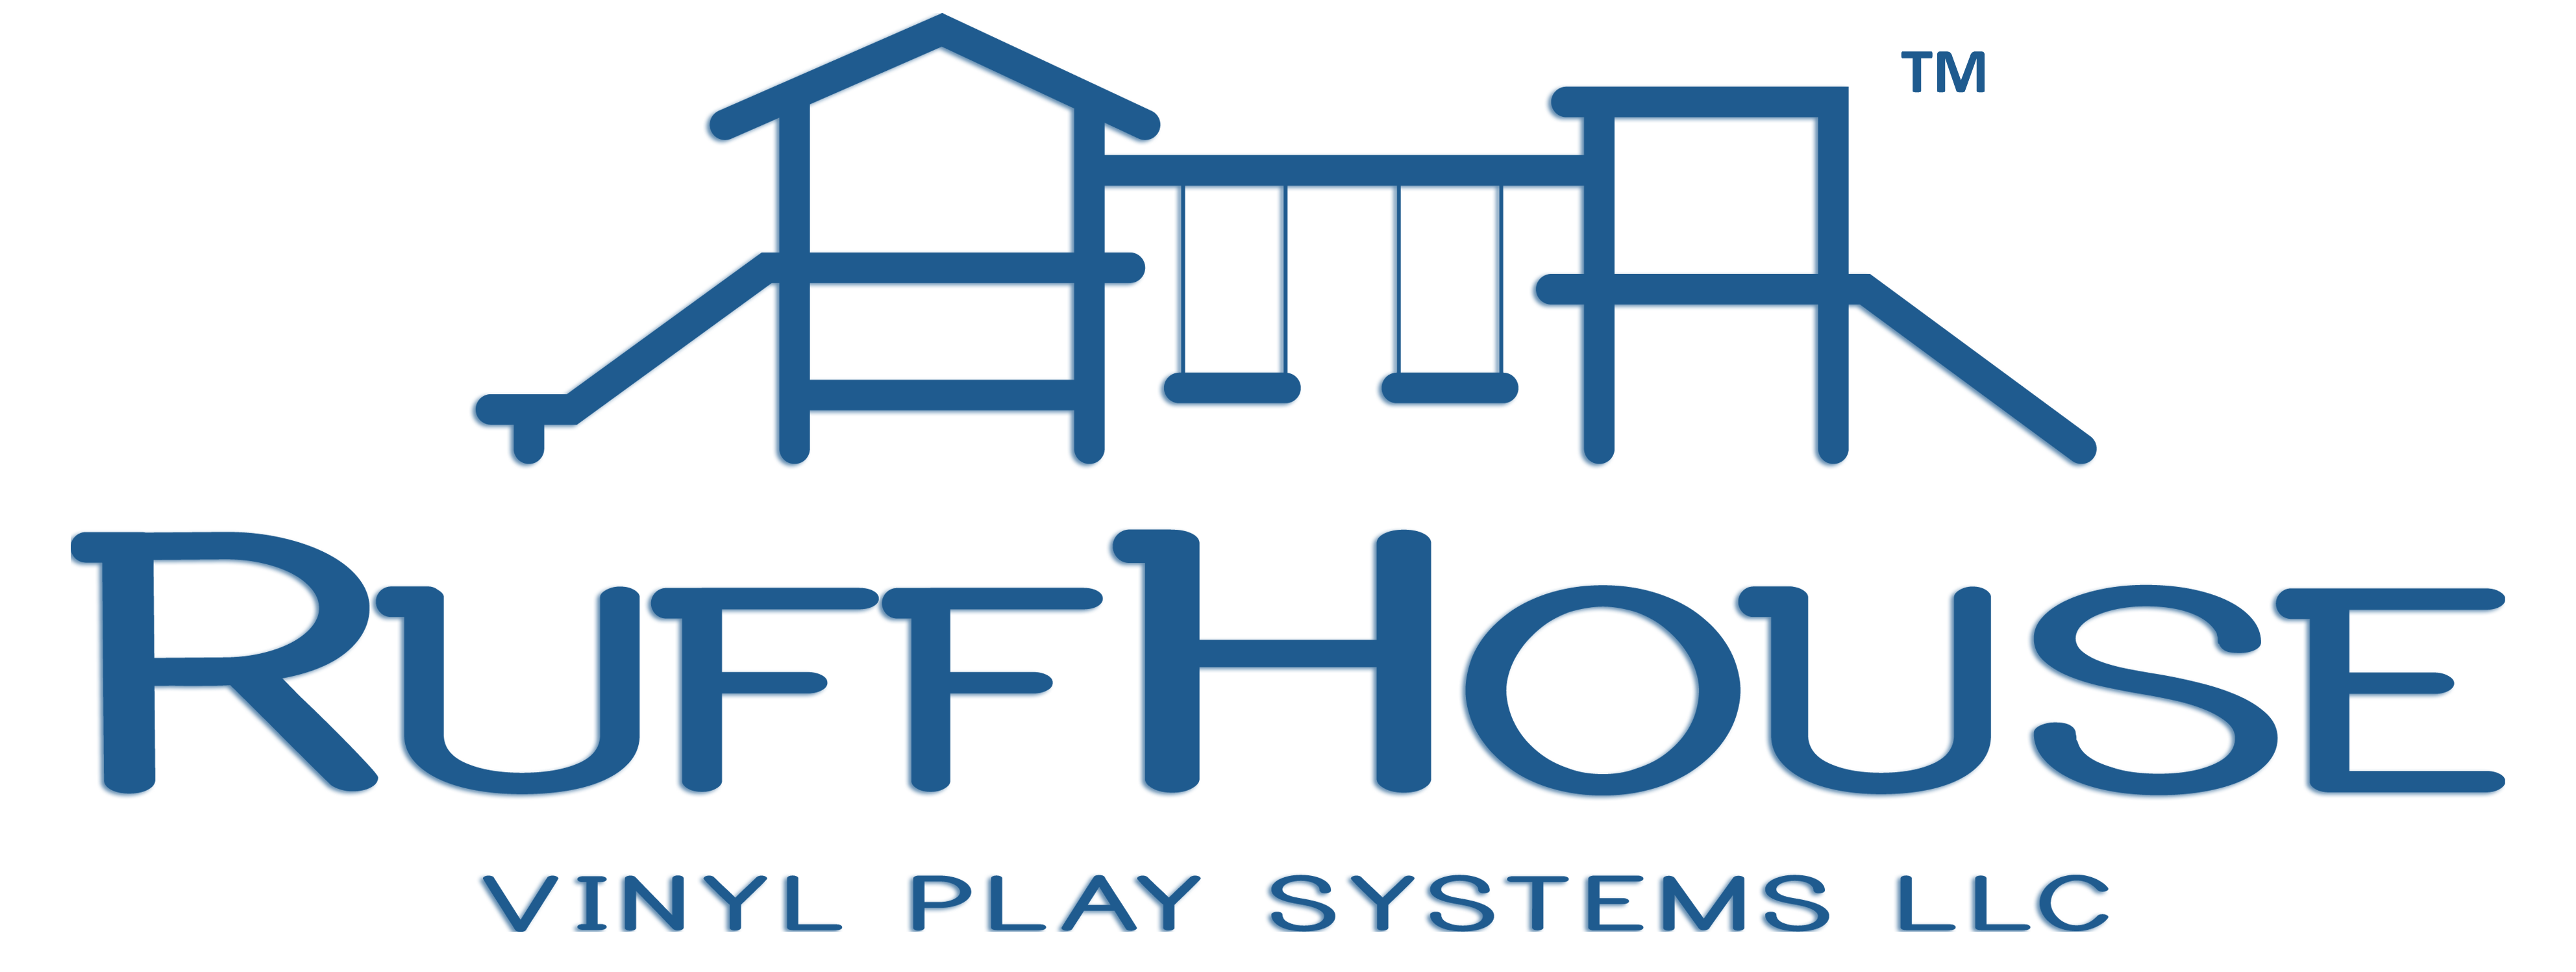 Ruffhouse Vinyl Play Systems